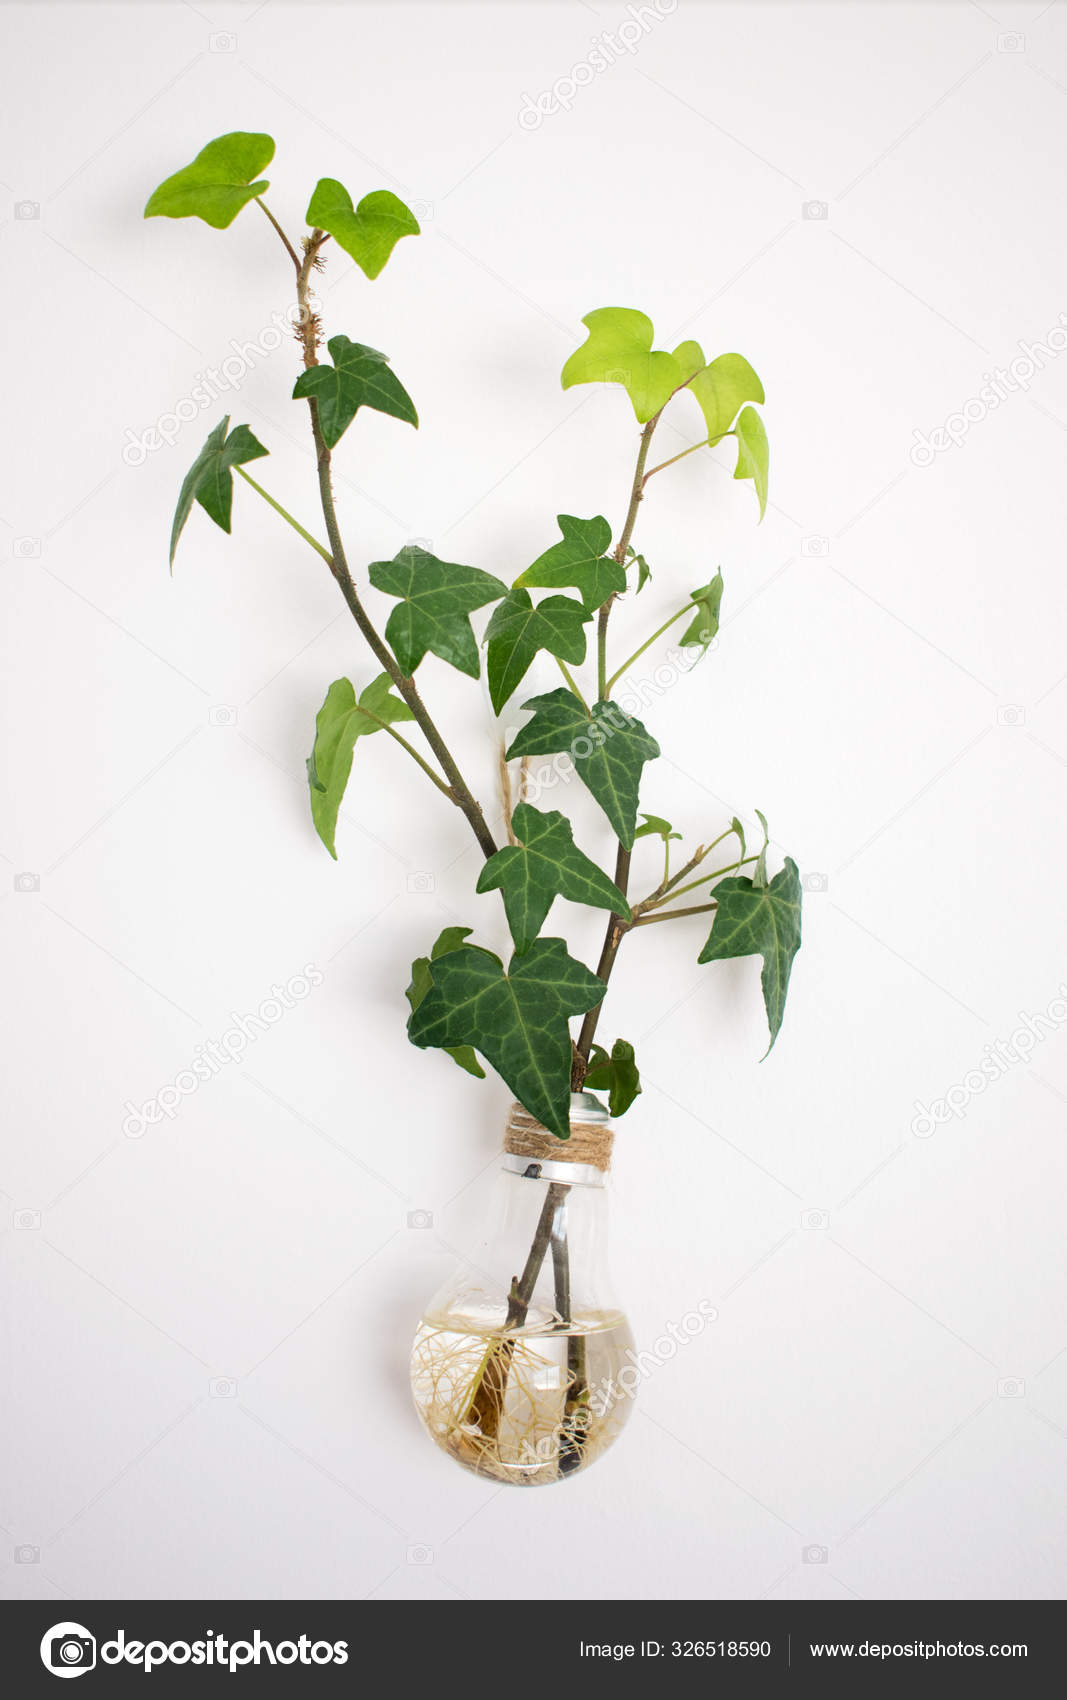 Green Plant Hanging Wall Glass Vase Clear Climbing Wall Flower Stock Photo C Ollyplu 326518590